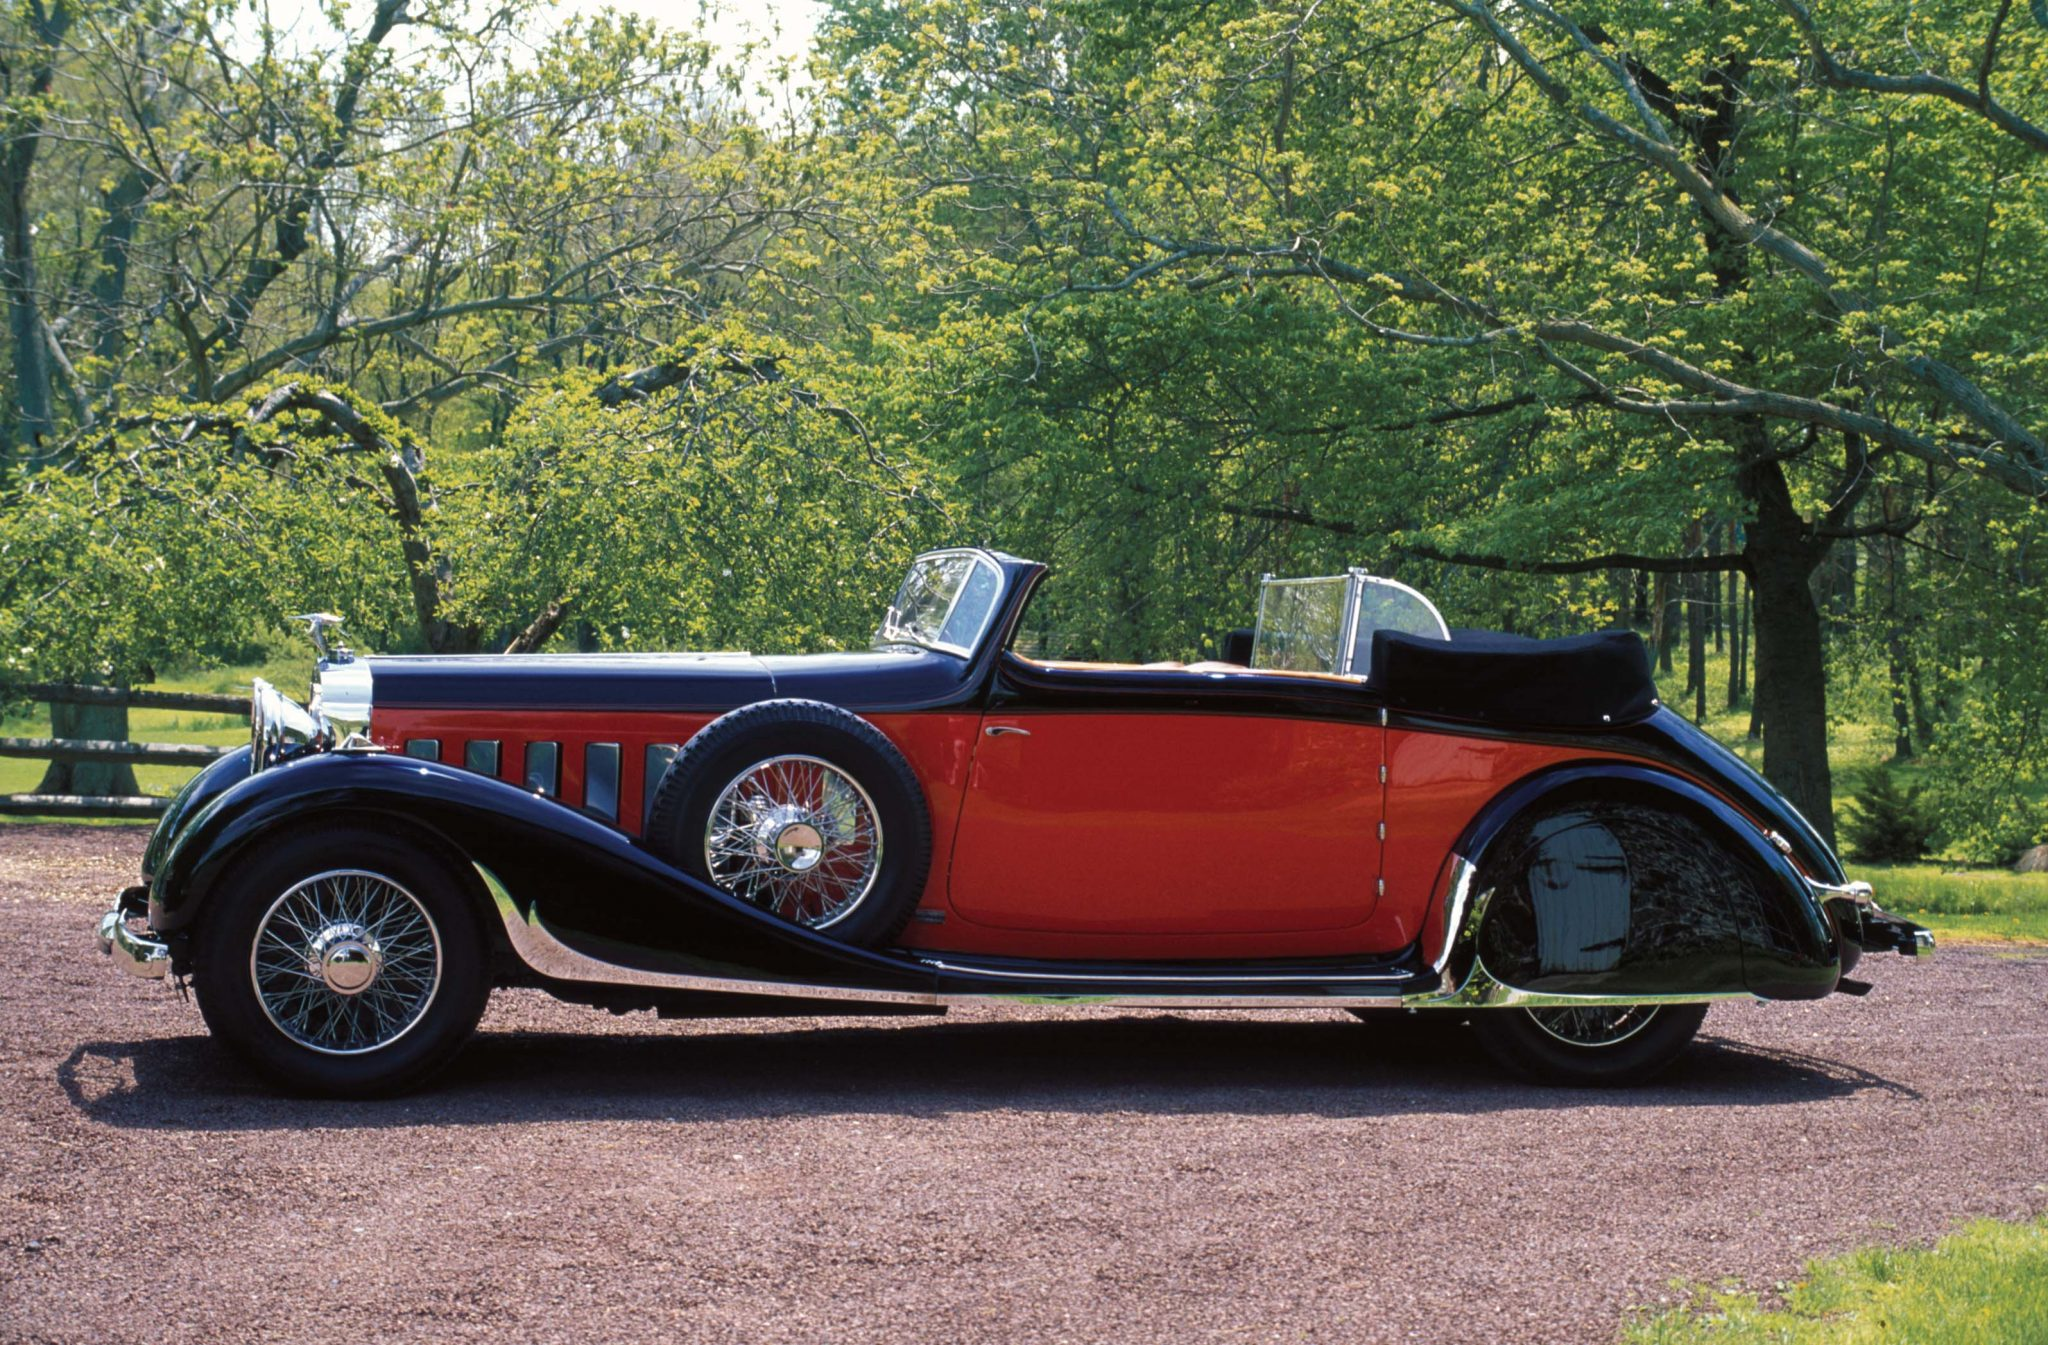 Hispano Suiza Introduced The 200 Horse J12 Model In 1931 This Was